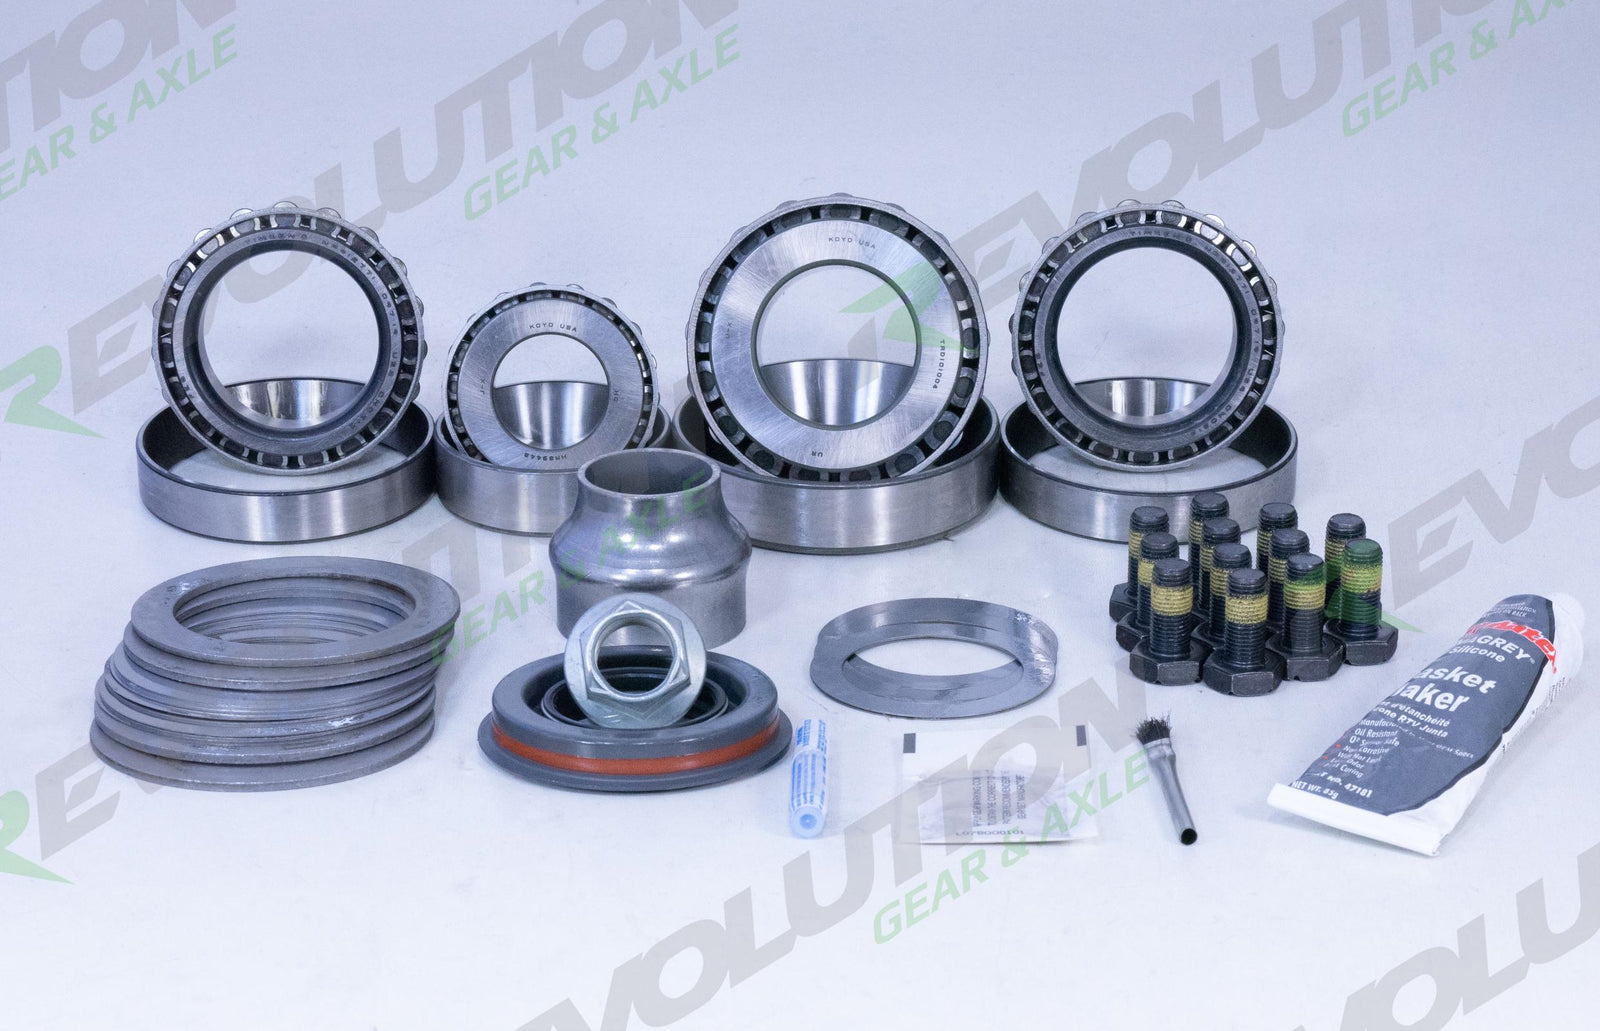 Ford 9.75 Inch Master Overhaul Kit 2011 and Up; For use with 2010 and Down Ring and Pinion Revolution Gear and Axle - HQ Offroad